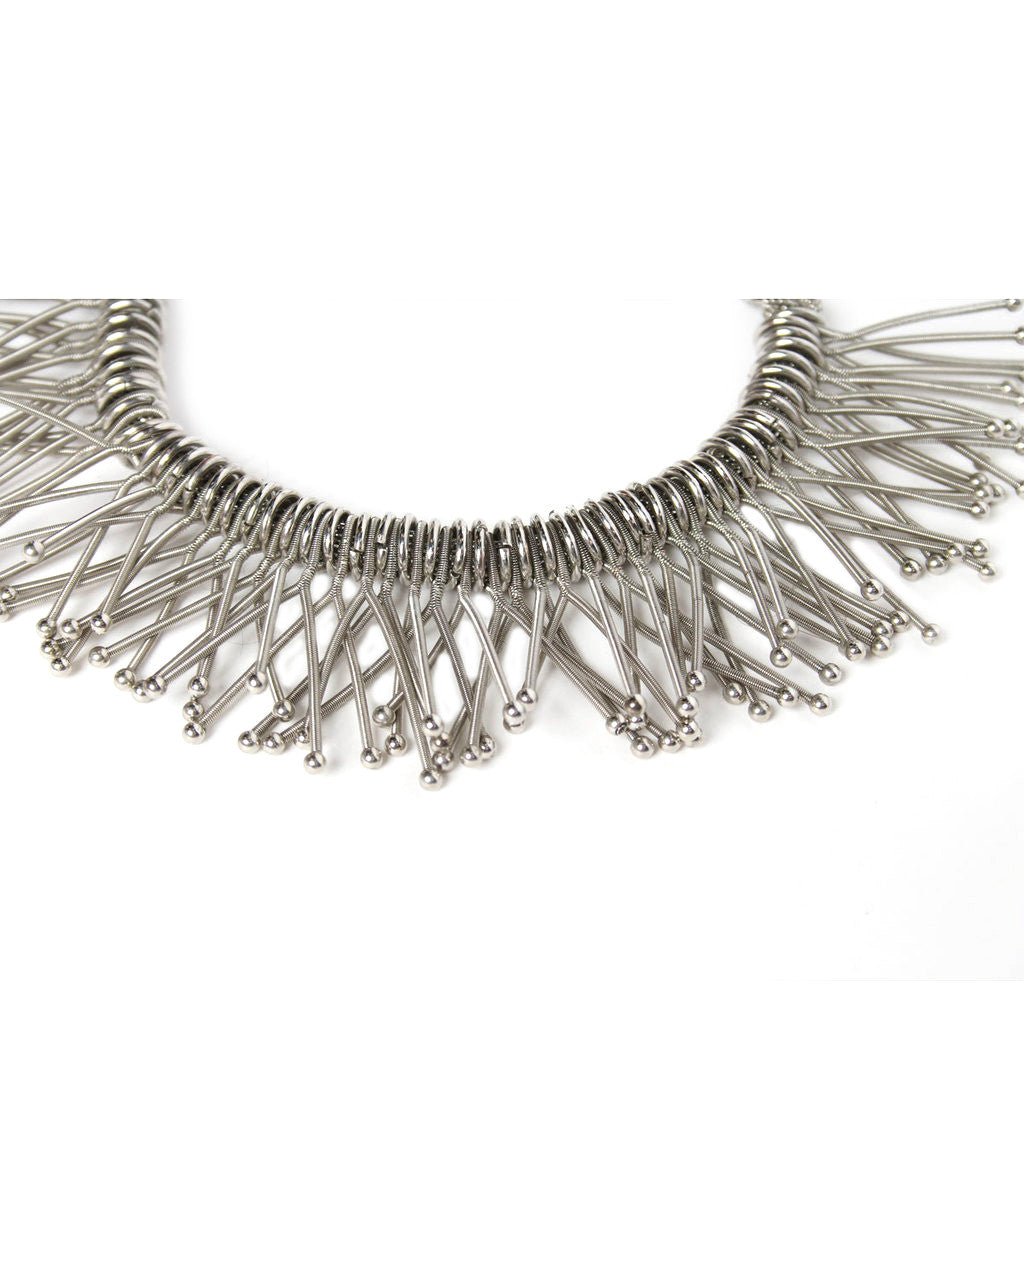 Double Strand Silver Tone Mesh Spring Choker - C.Madeleine's